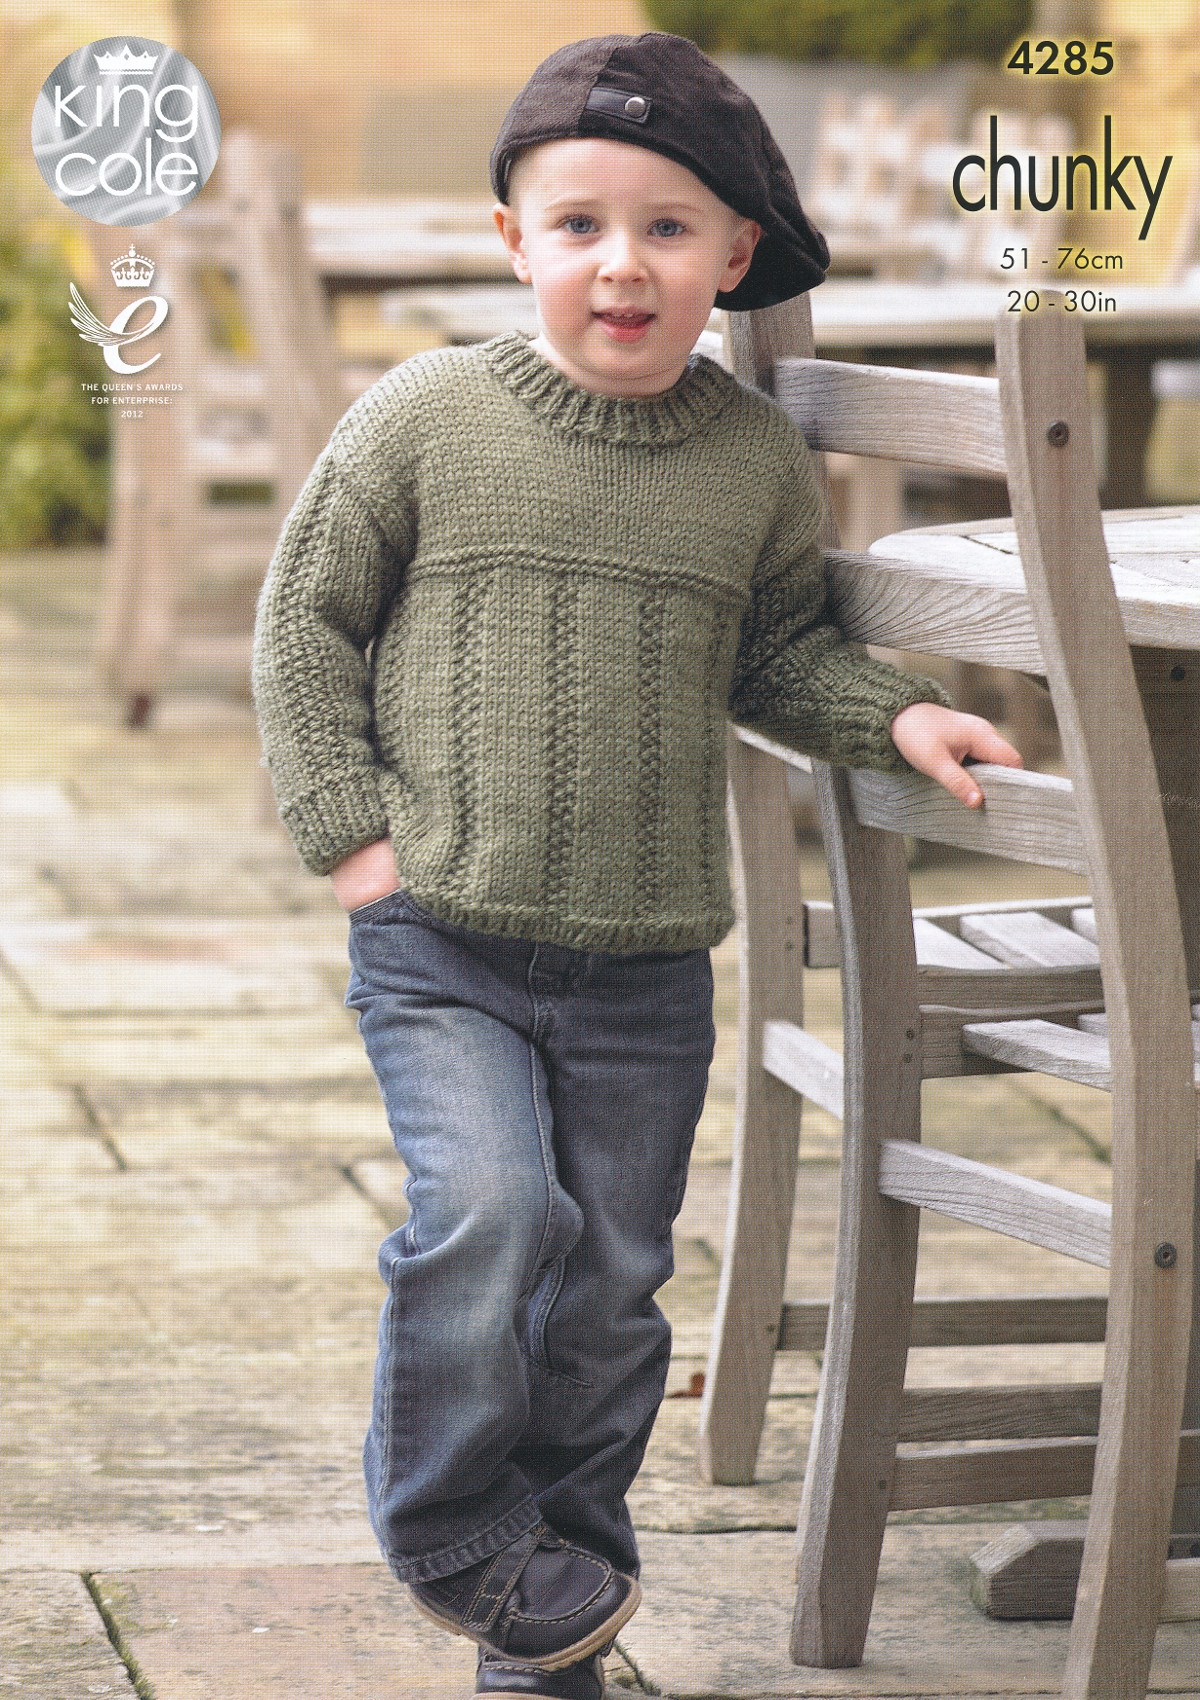 Kids Chunky Knitting Pattern King Cole Childrens Sweater Jumper ...